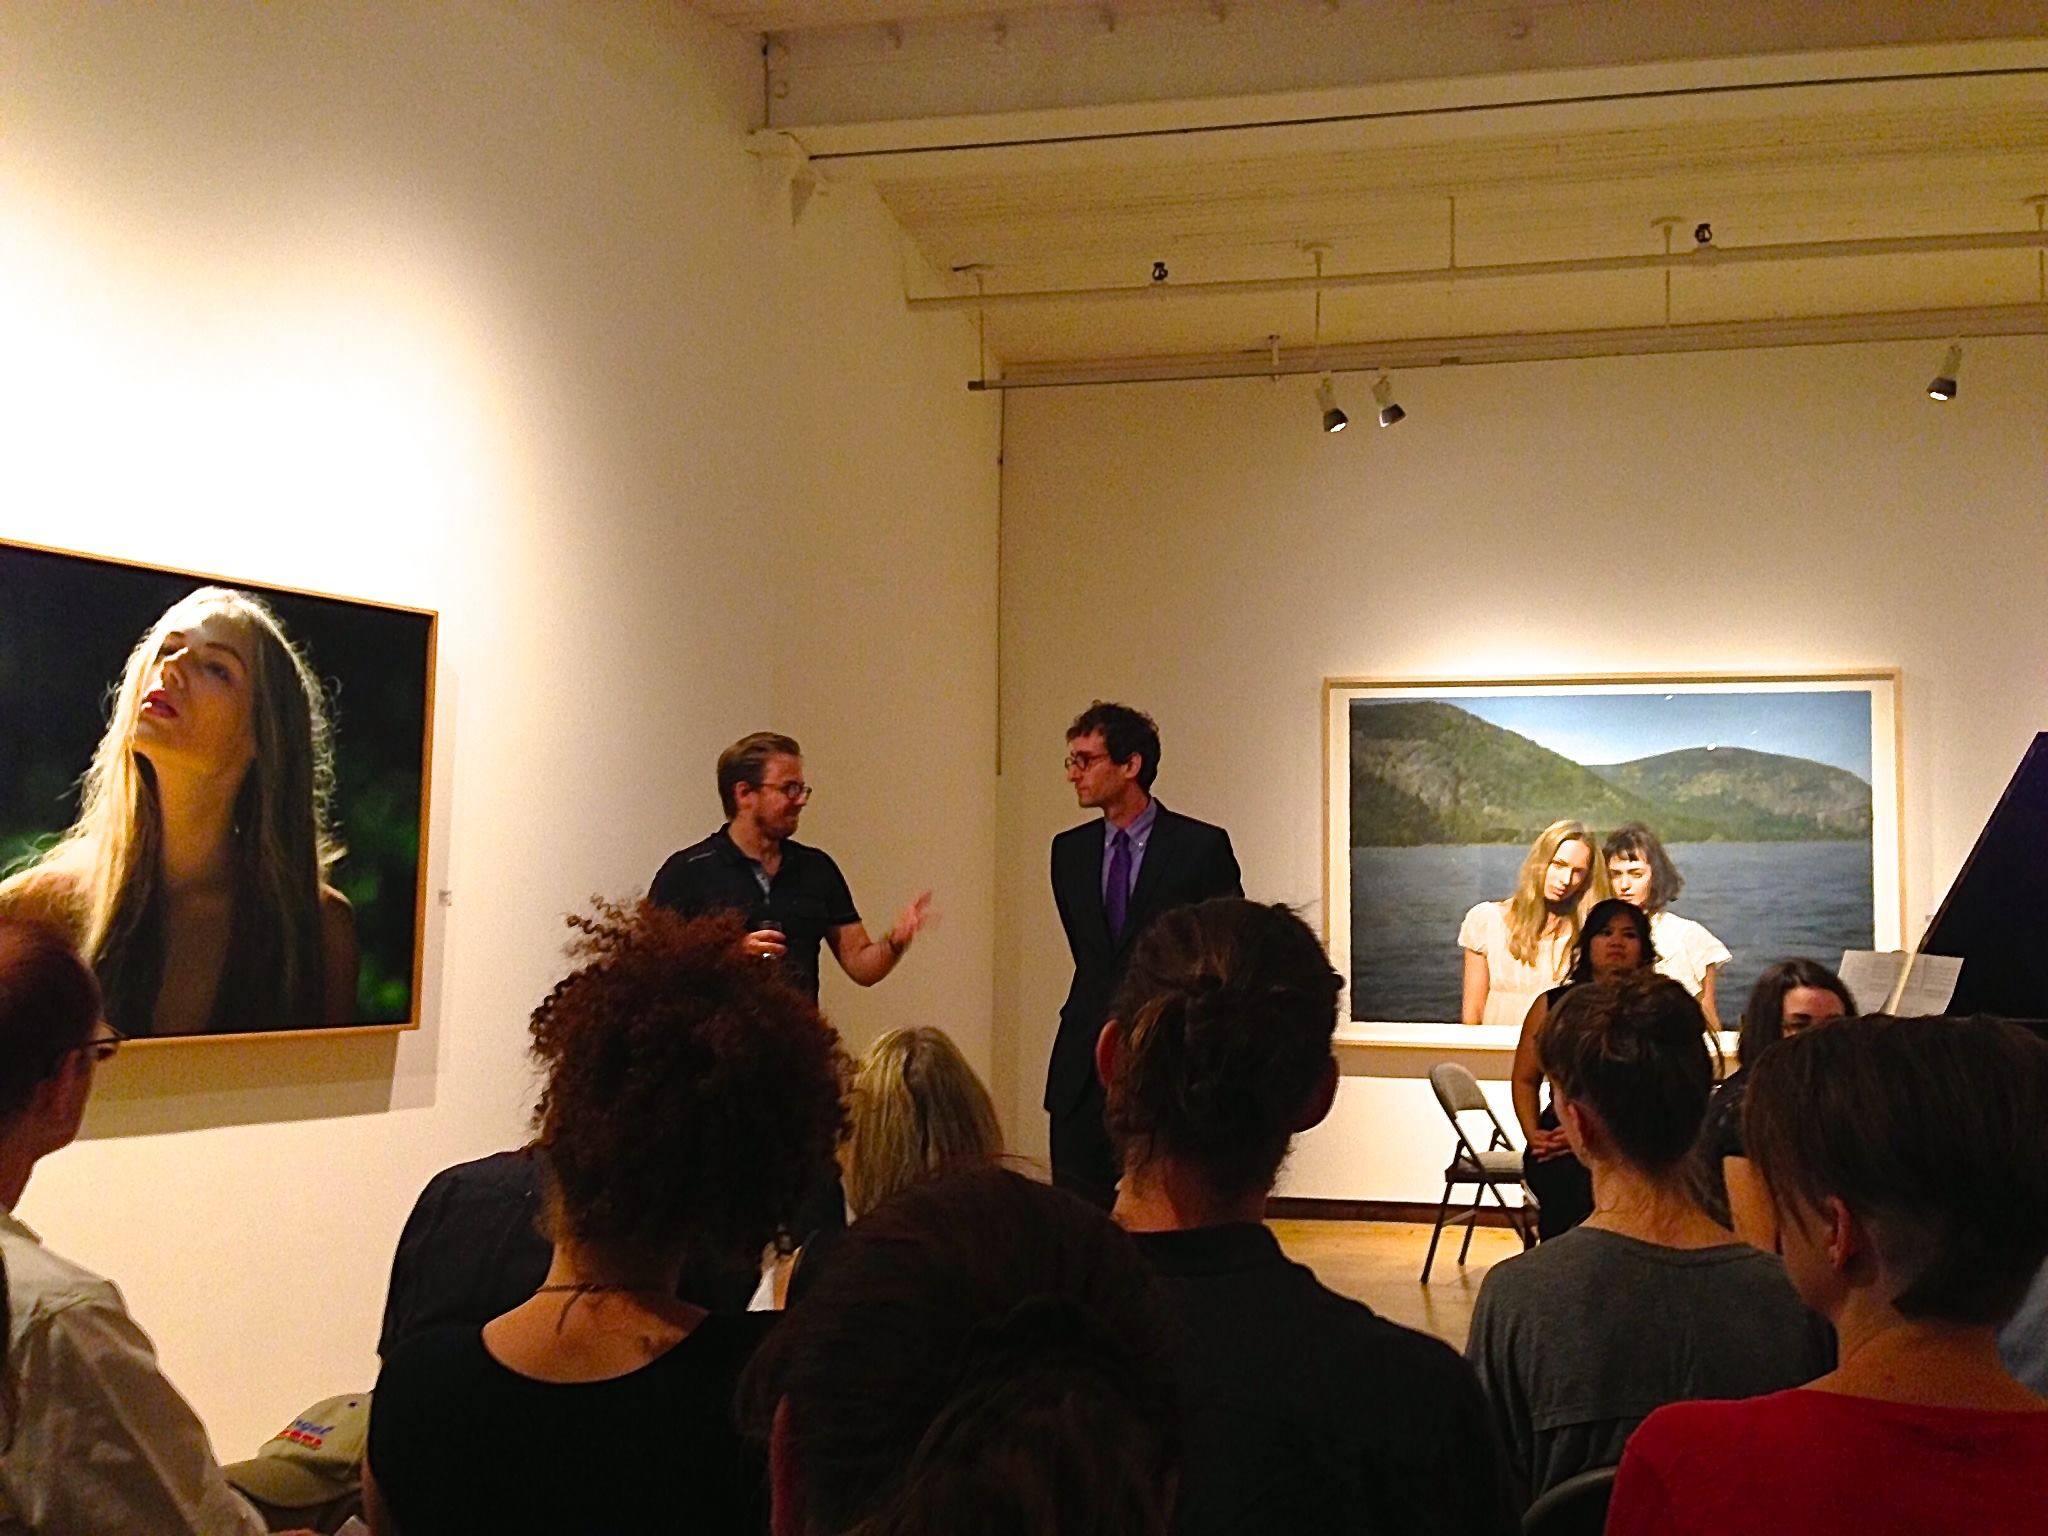 Marc introducing the piece